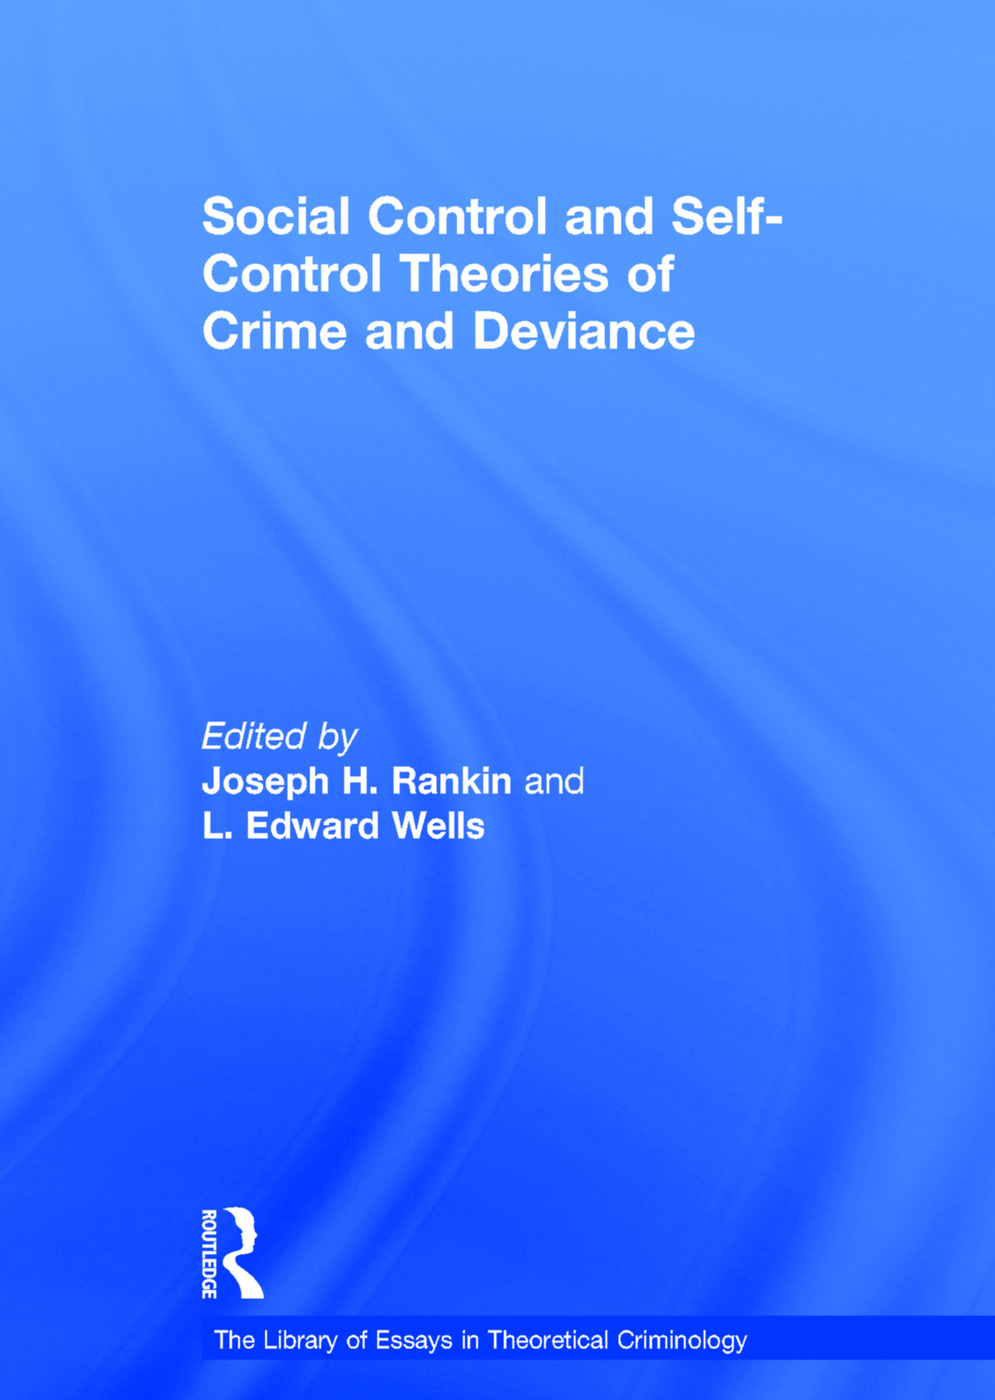 Social Control and Self-Control Theories of Crime and Deviance book cover